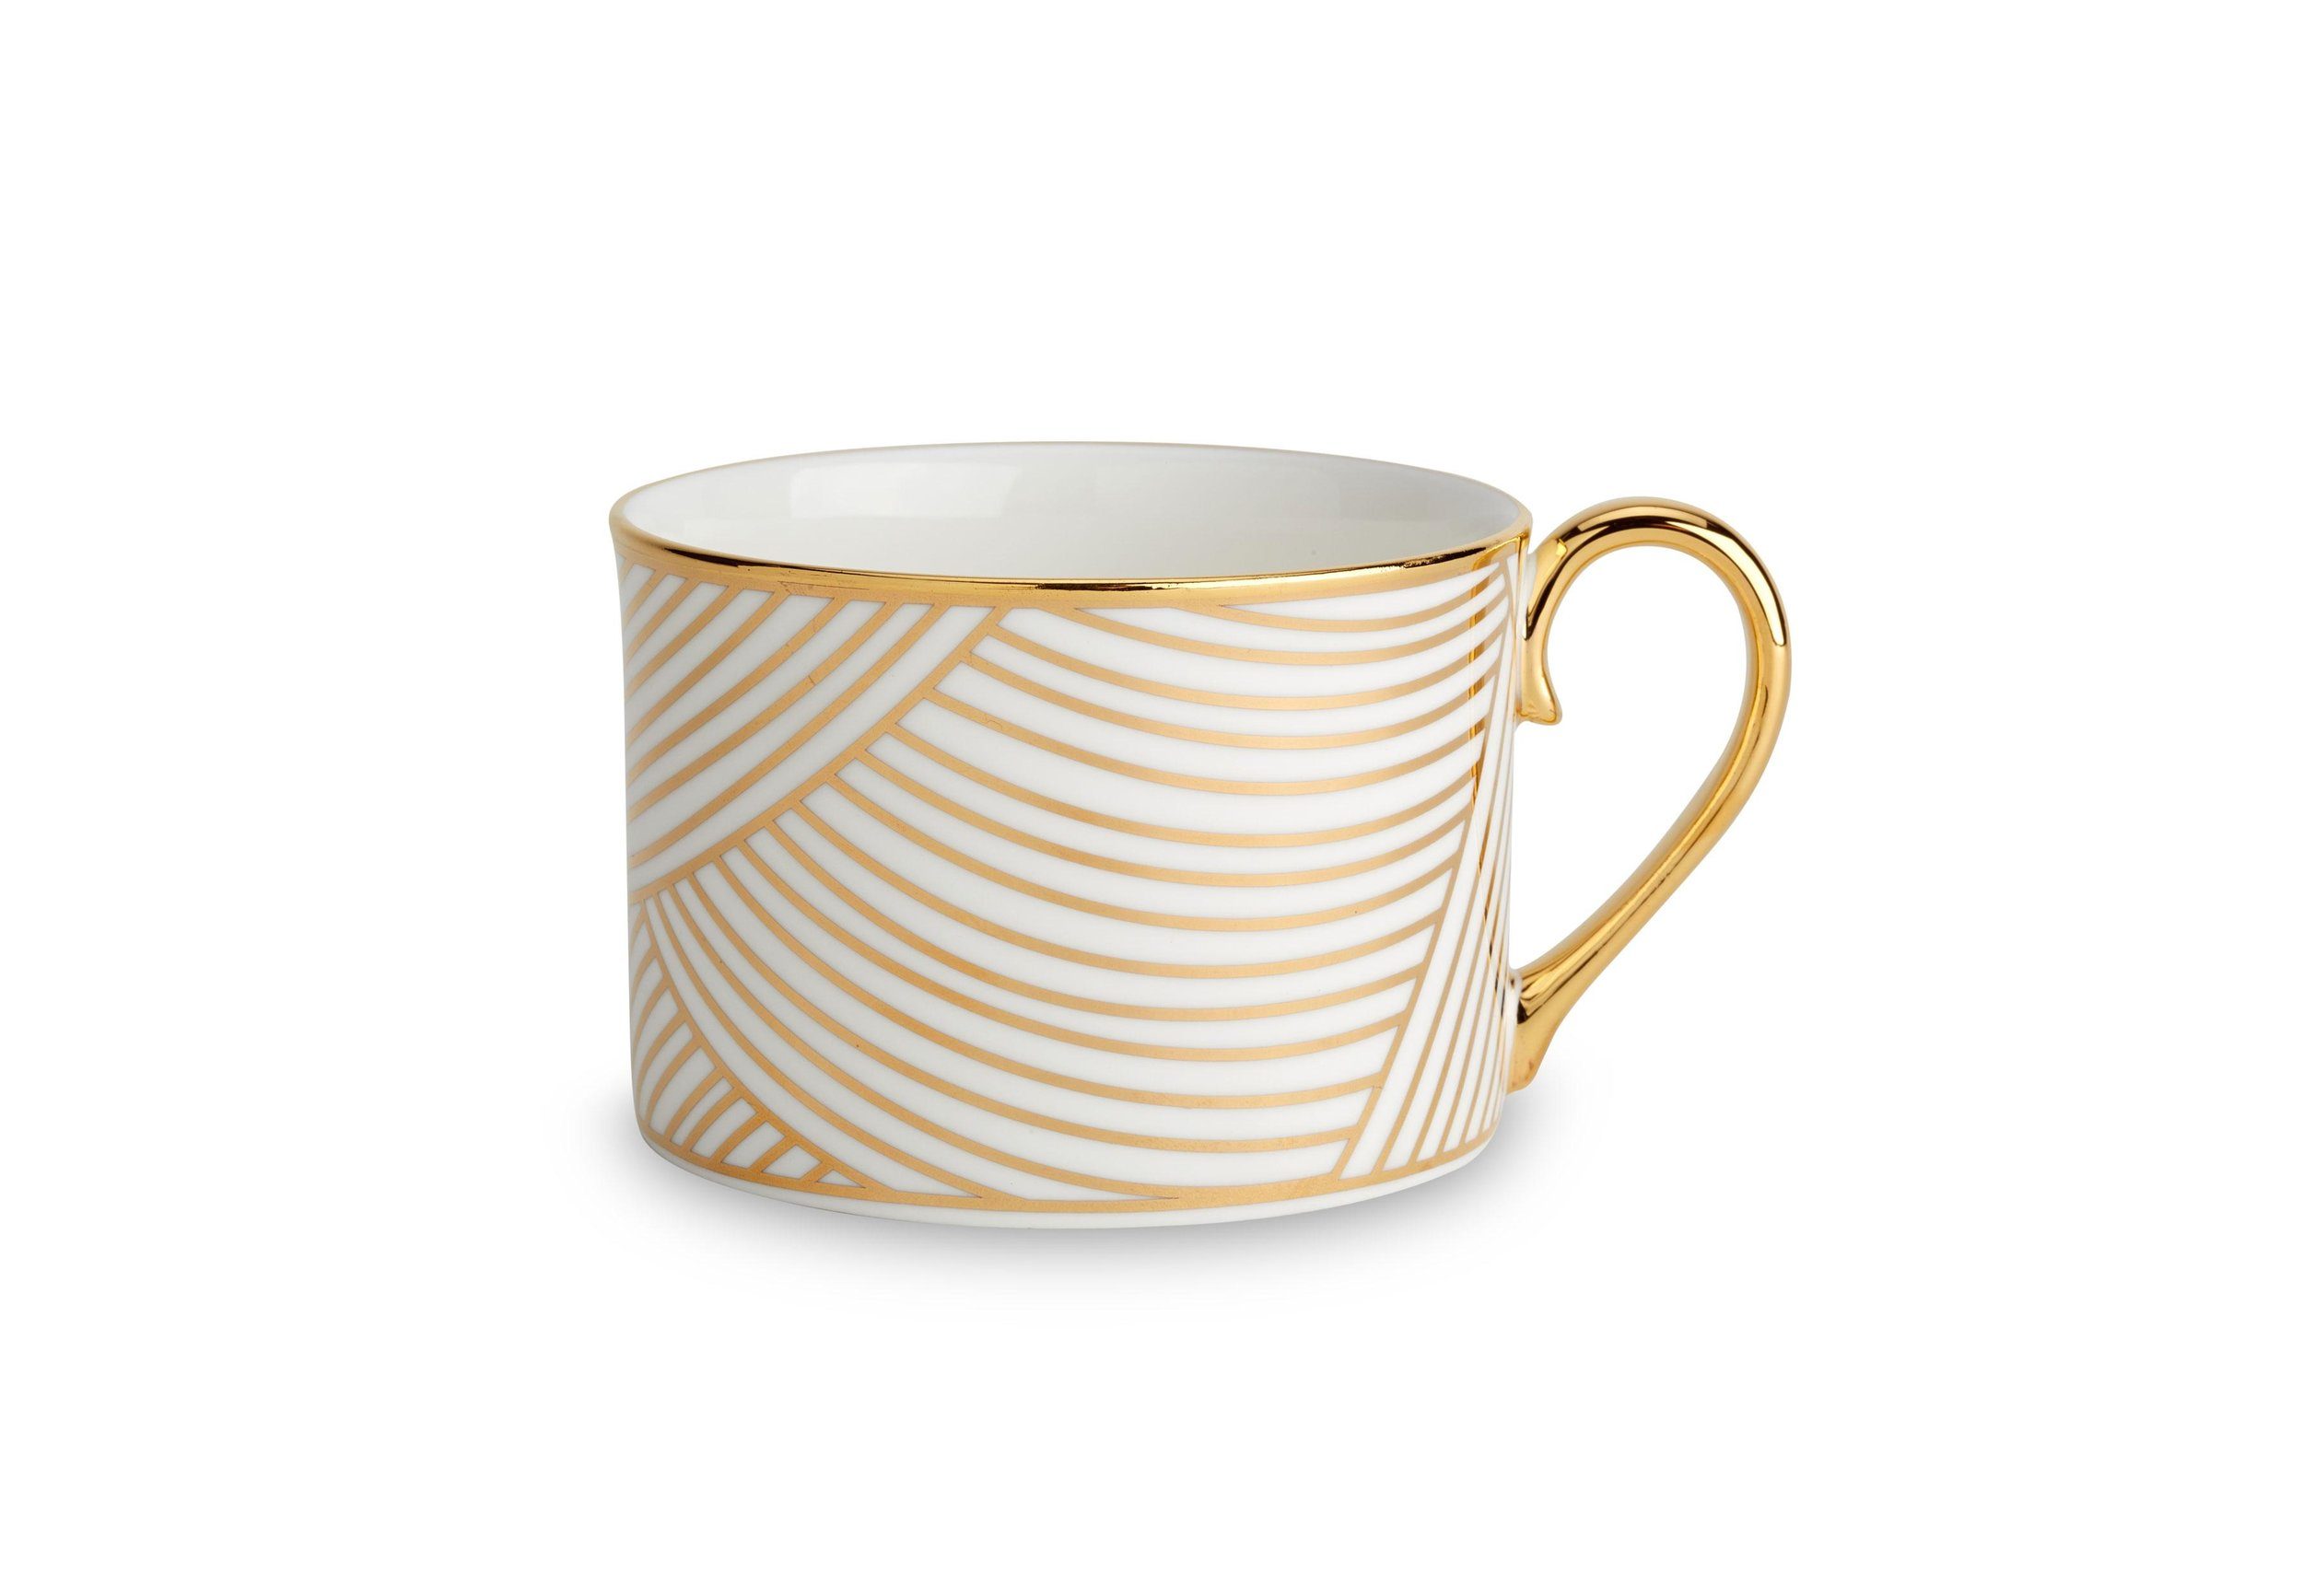 Lustre cup / Bethan Gray